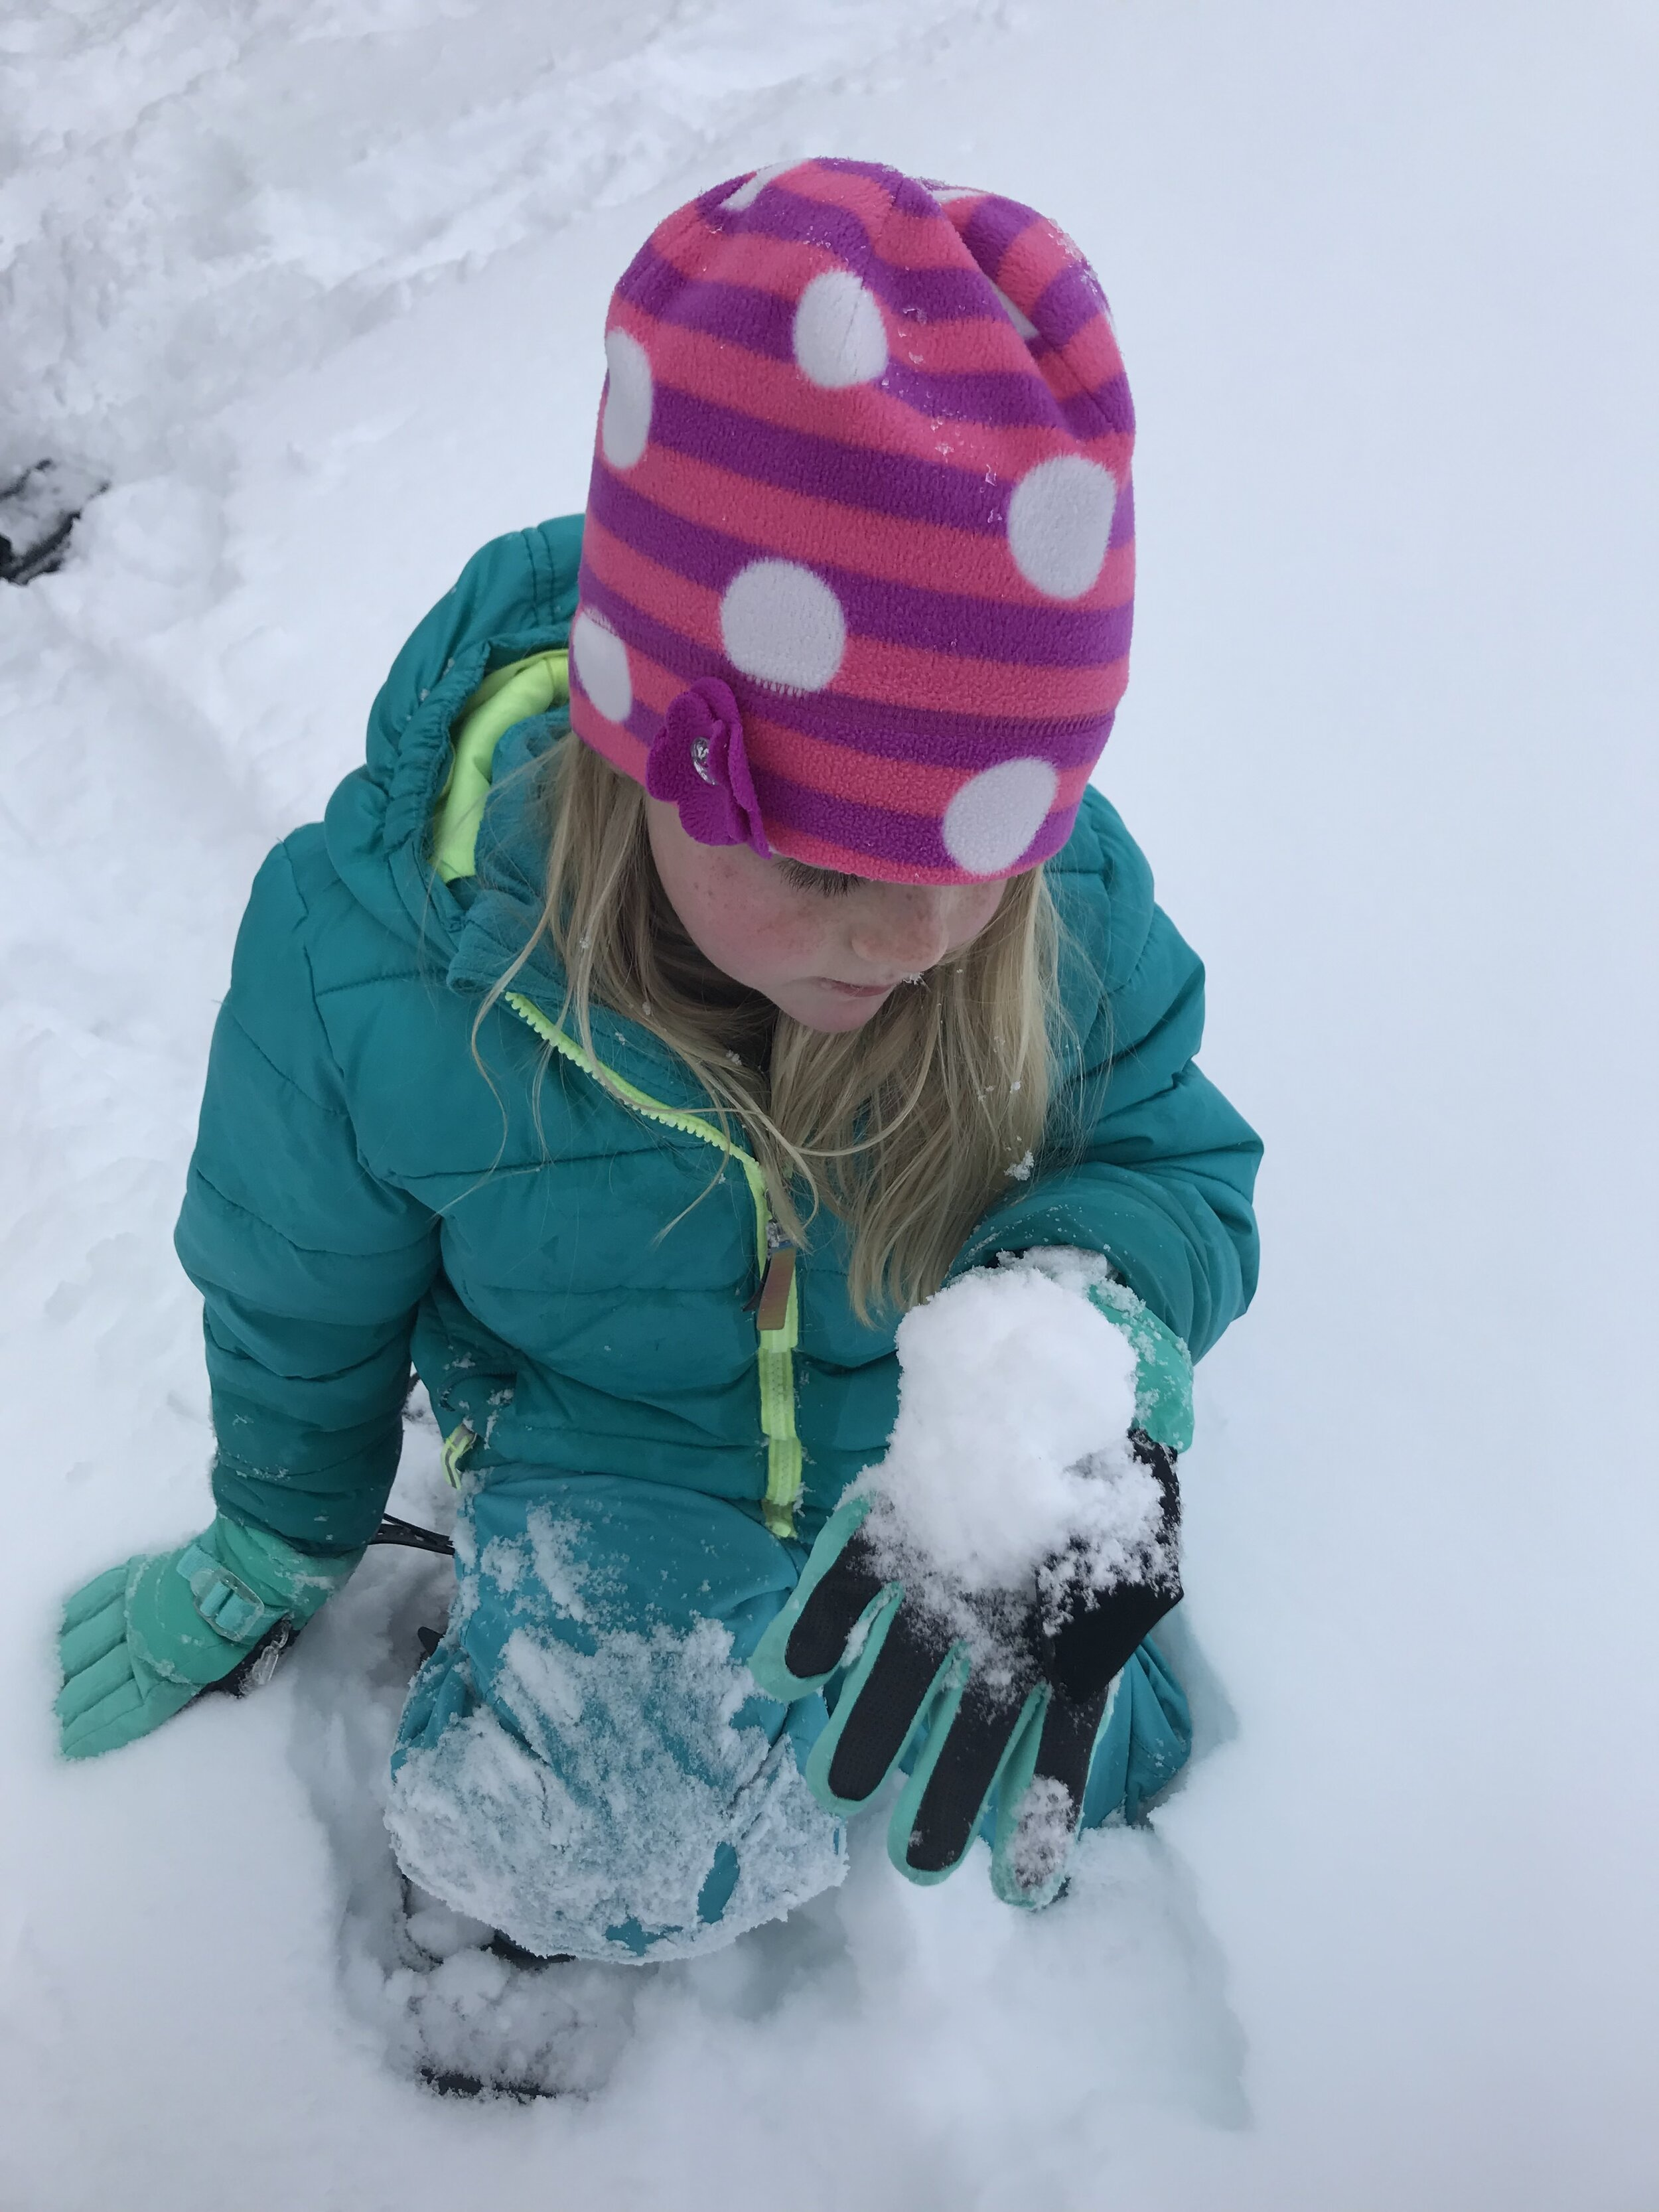 Child observes snow crystals in a hand full of snow.